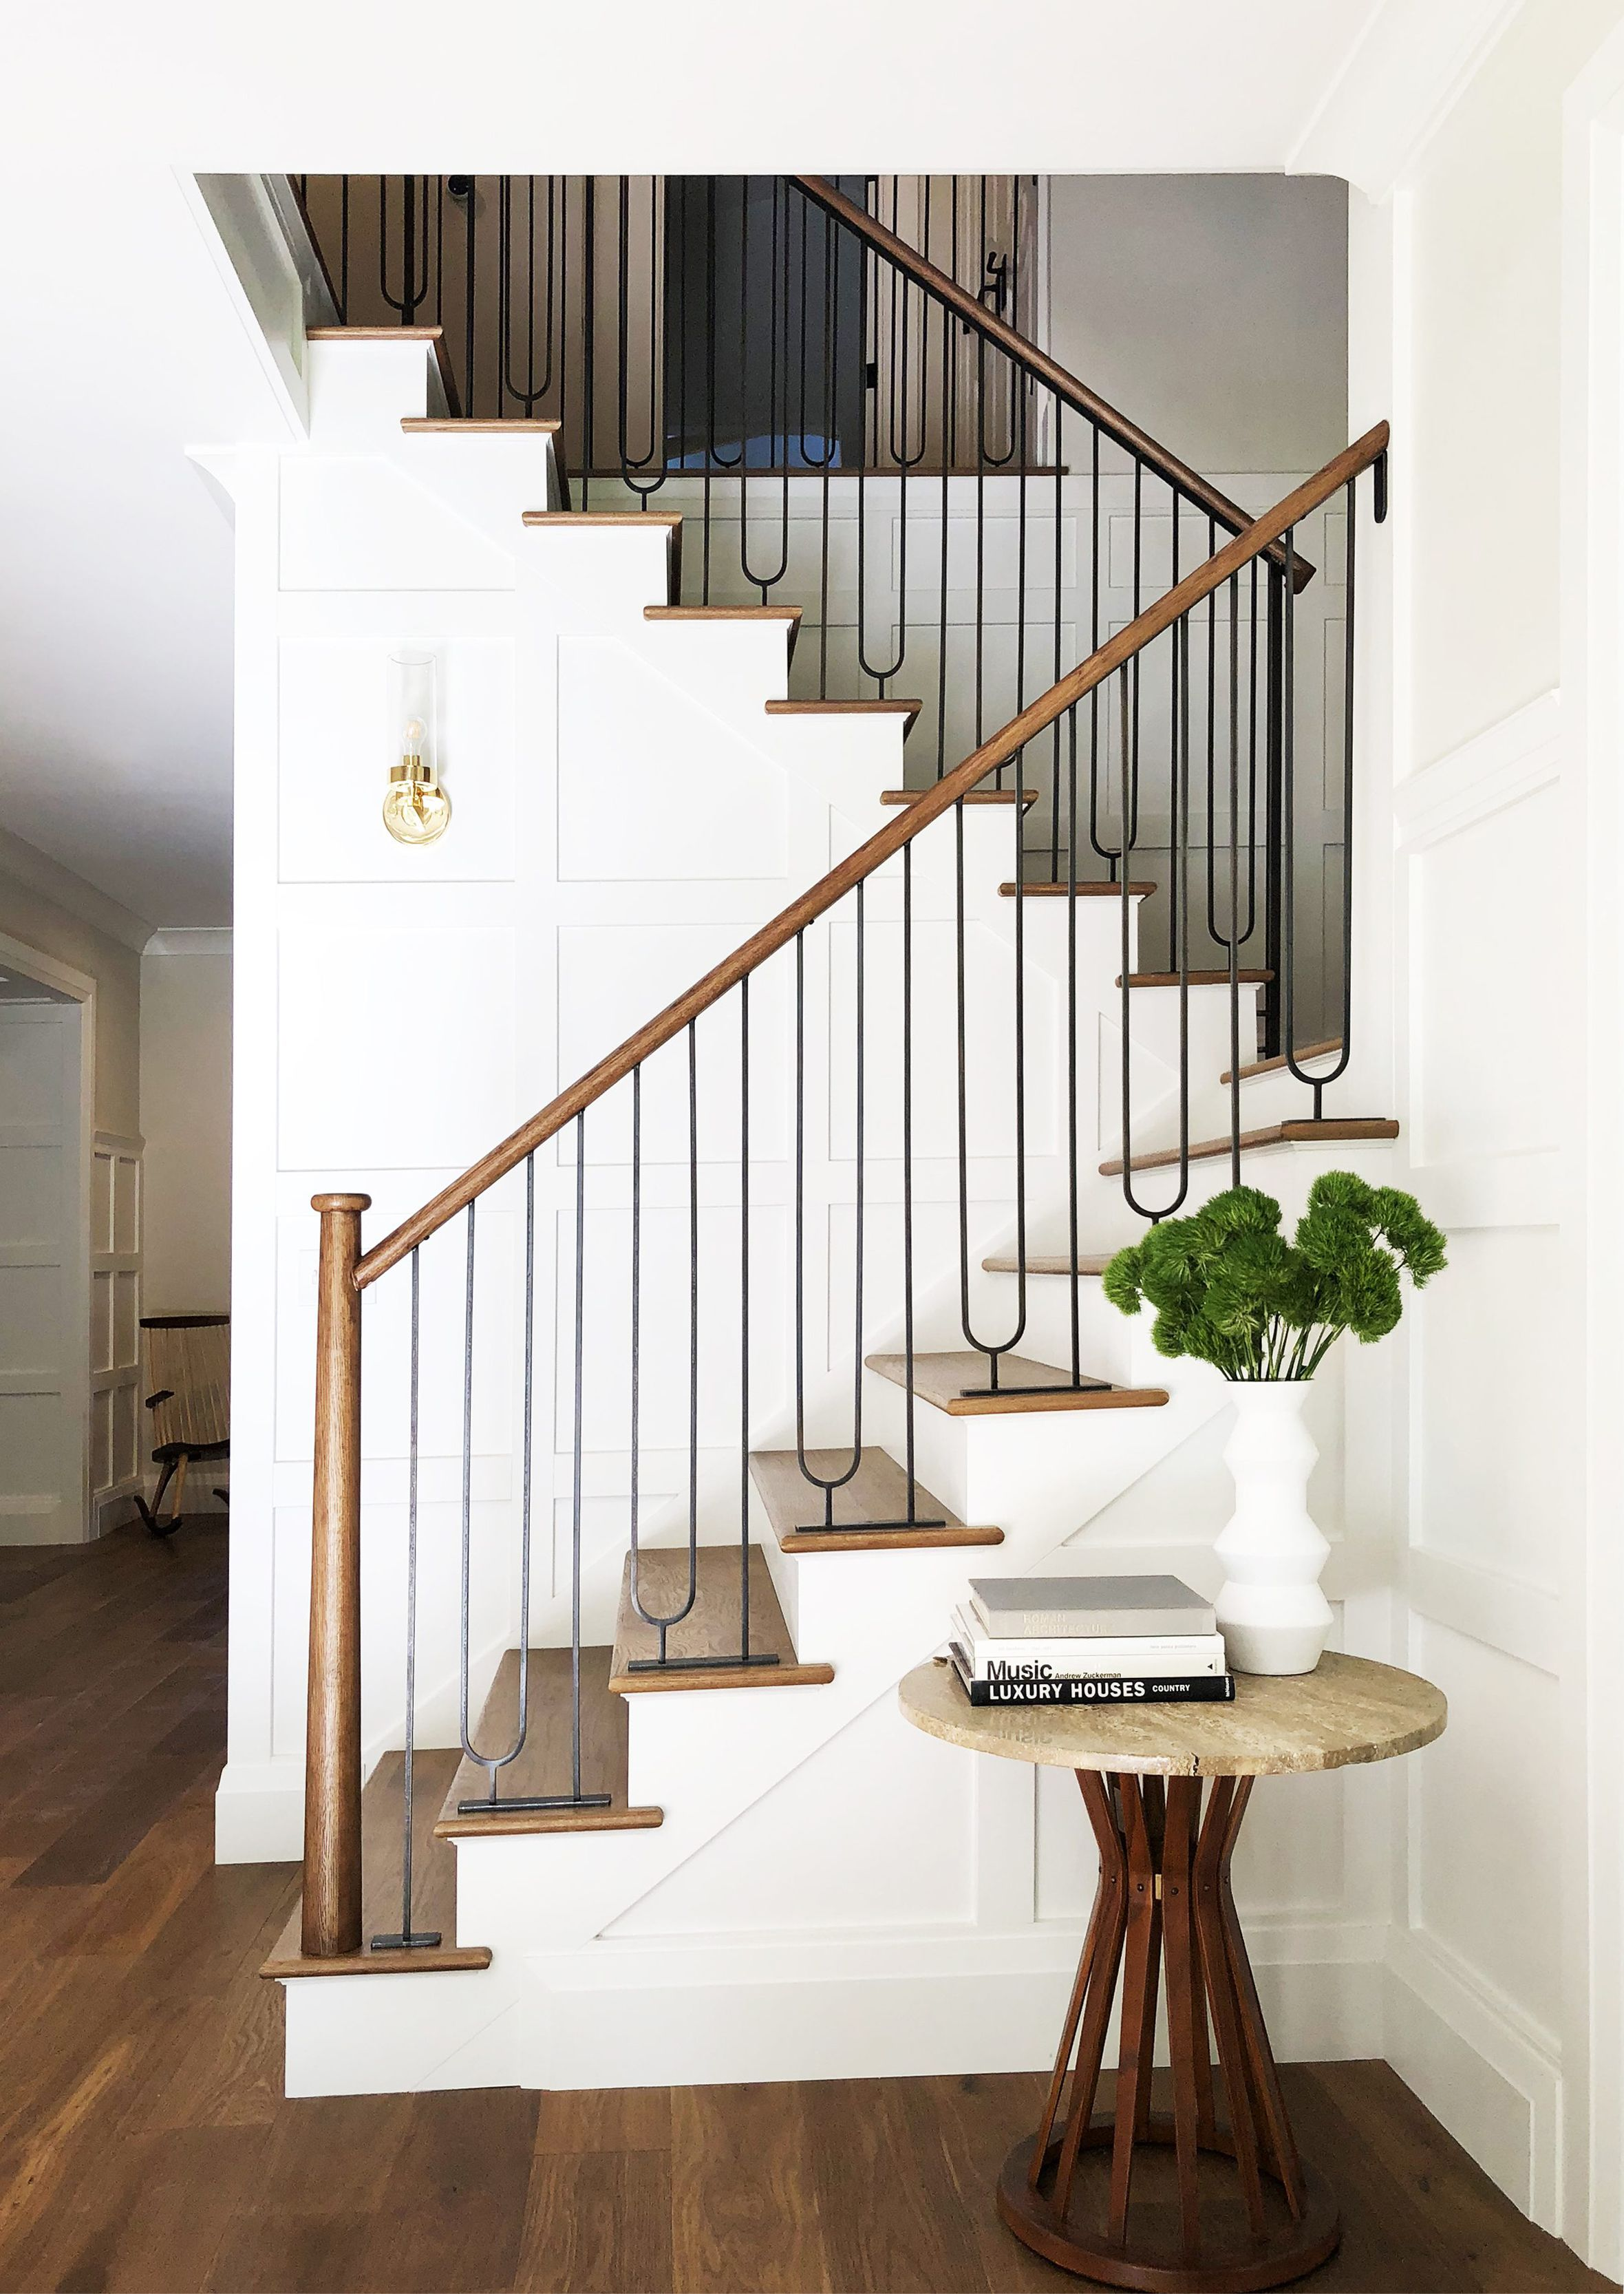 The Portland House Is For Sale Listing Sneak Peaks | Stair Banisters For Sale